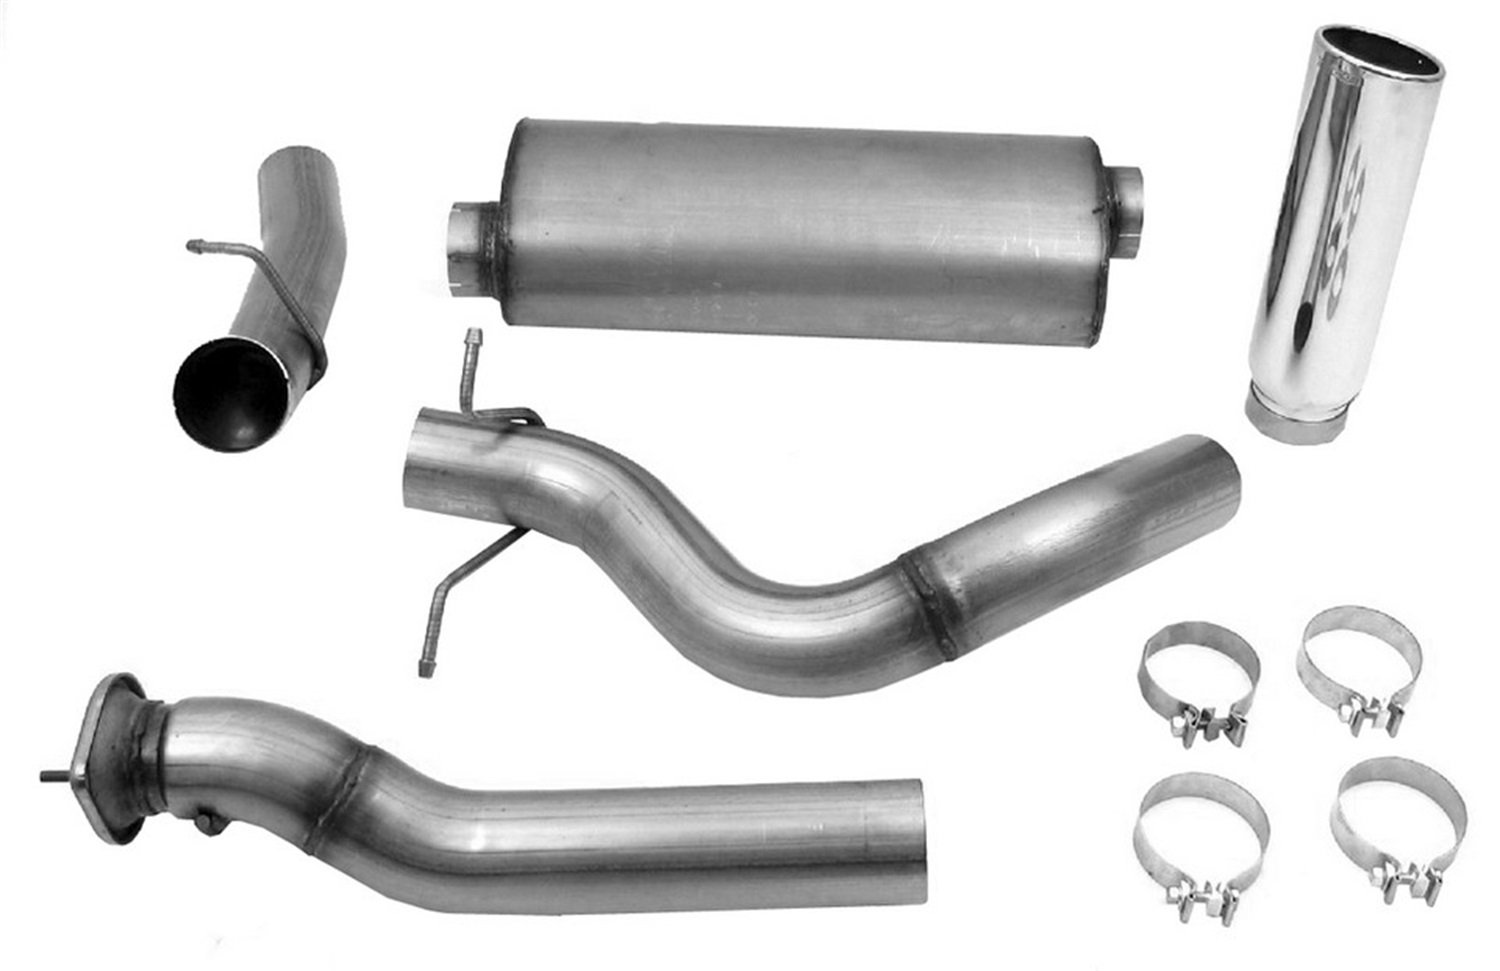 5. Dynomax 39511 Exhaust System Kit